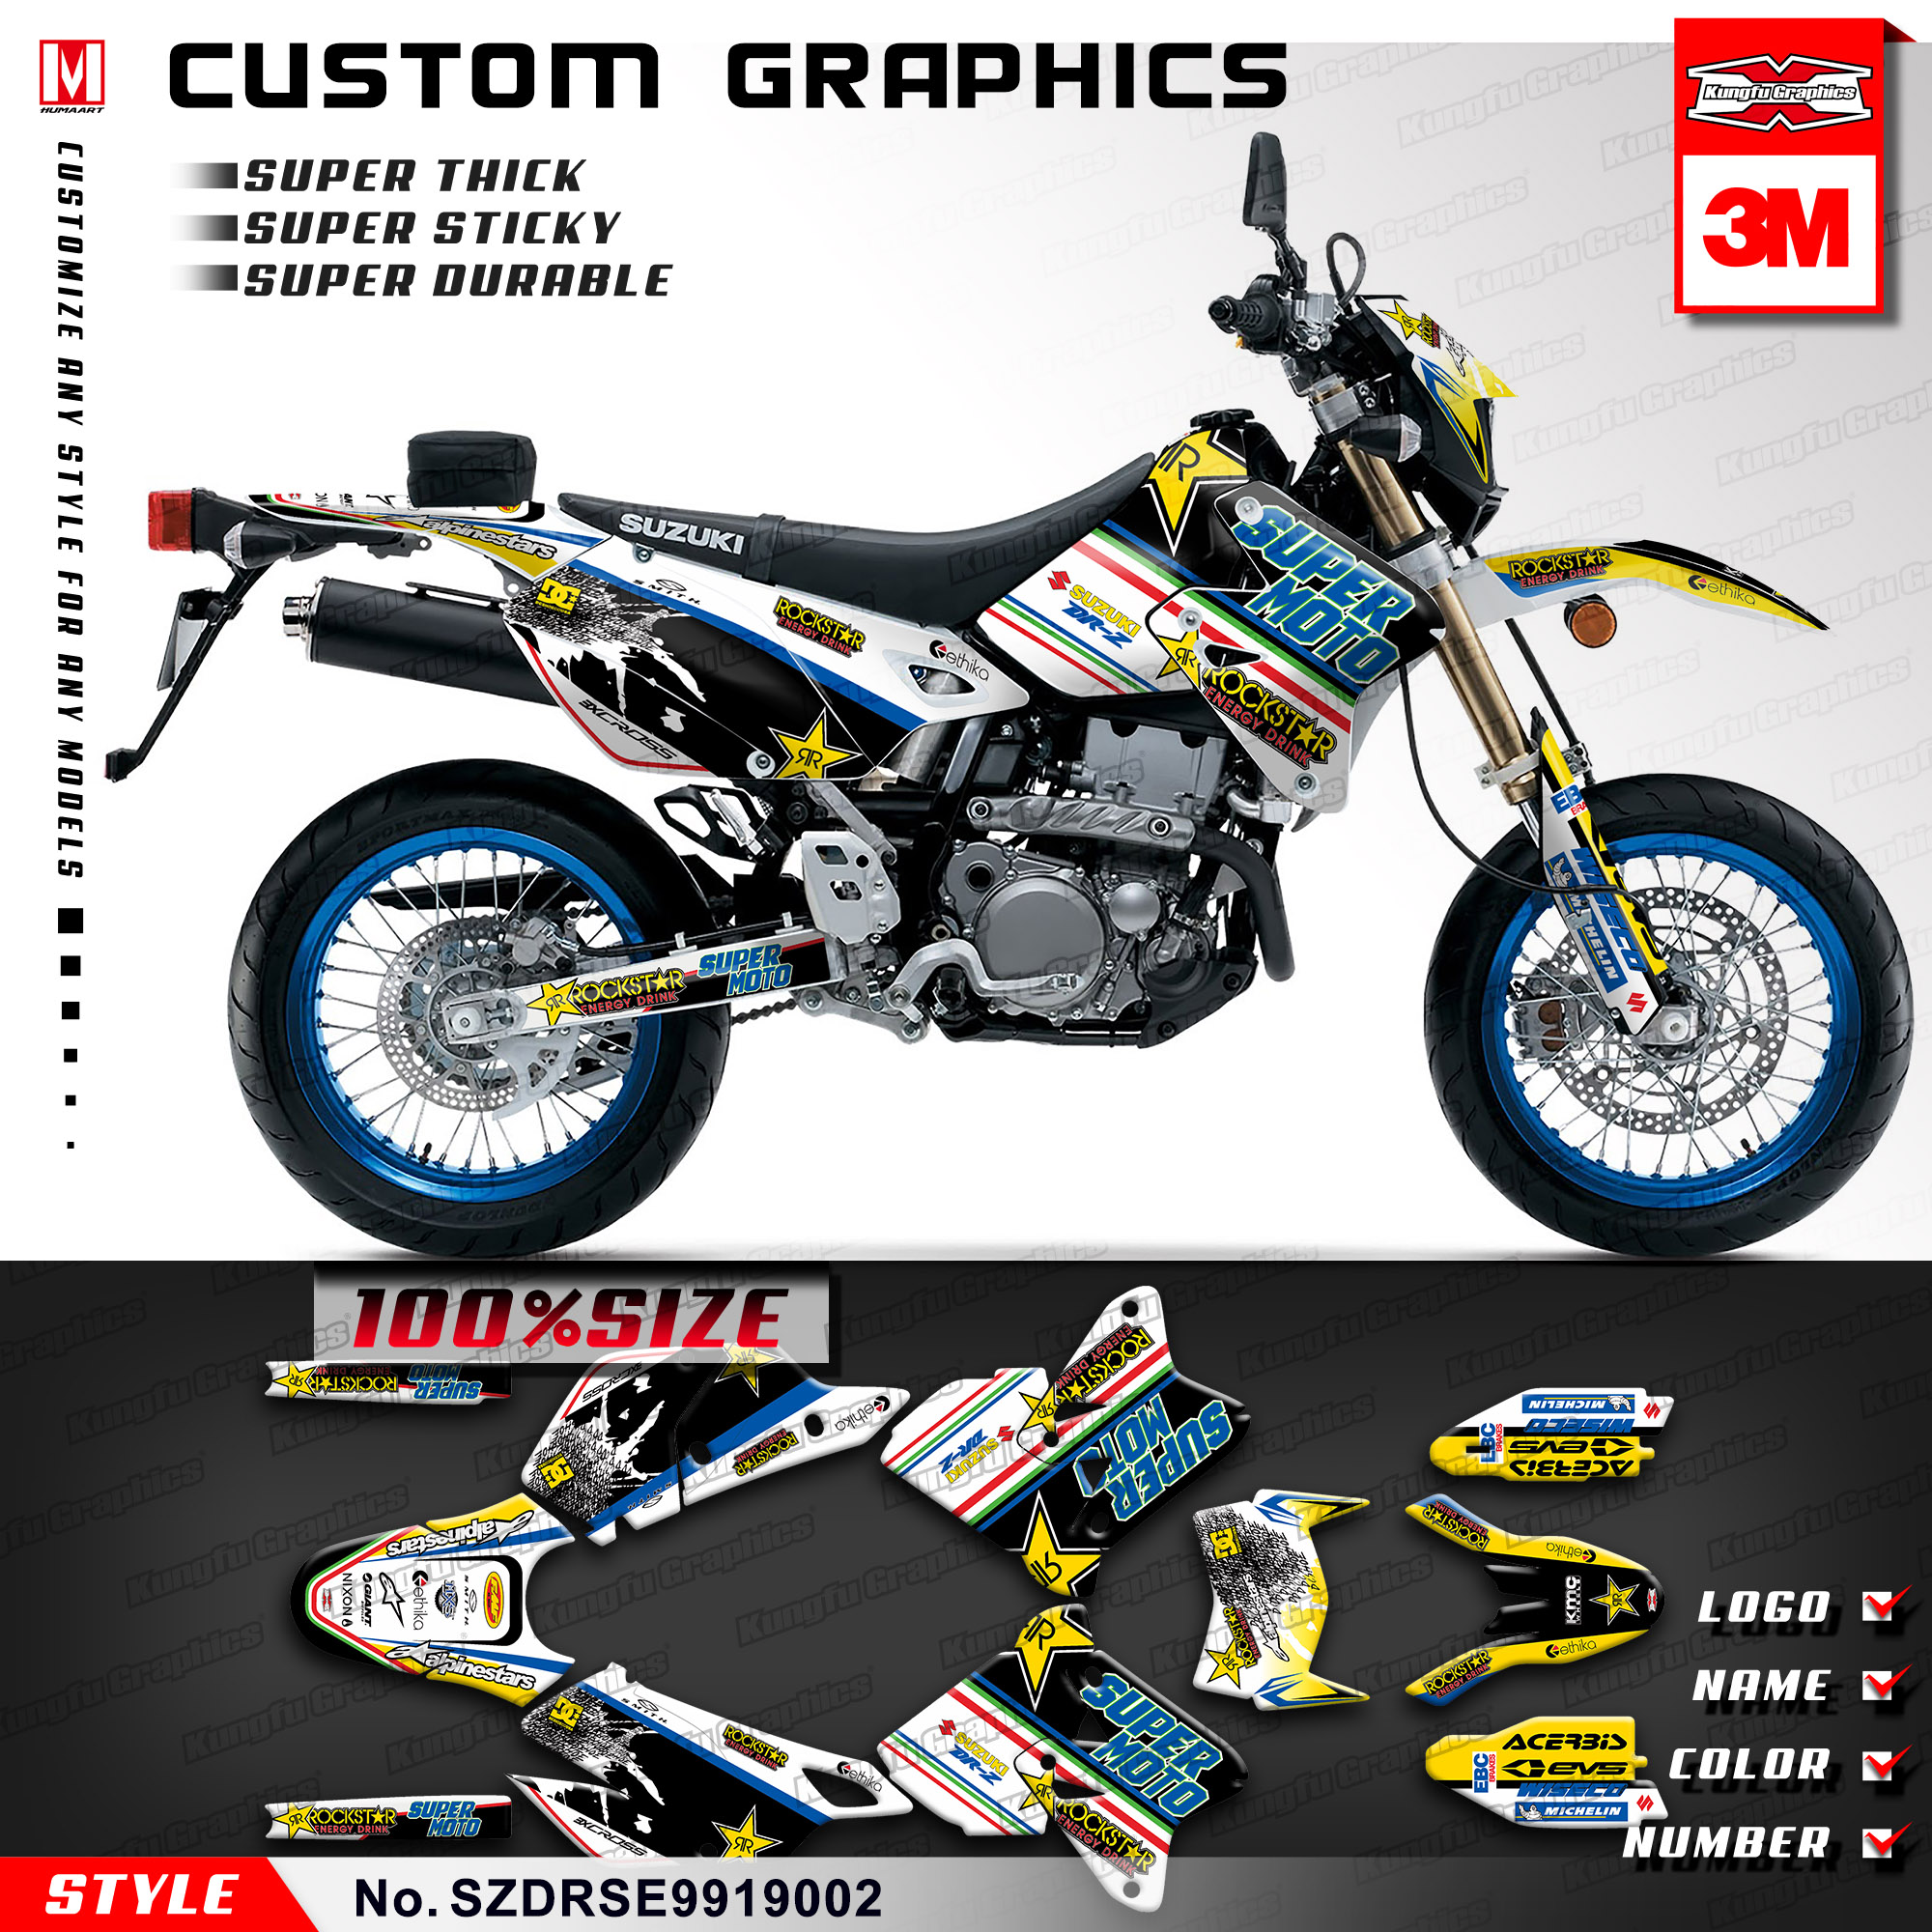 Us 139 89 kungfu graphics custom stickers vehicle wraps for suzuki drz400sm supermoto drz 400 e enduro 1999 2019 style no szdrse9919002 in decals